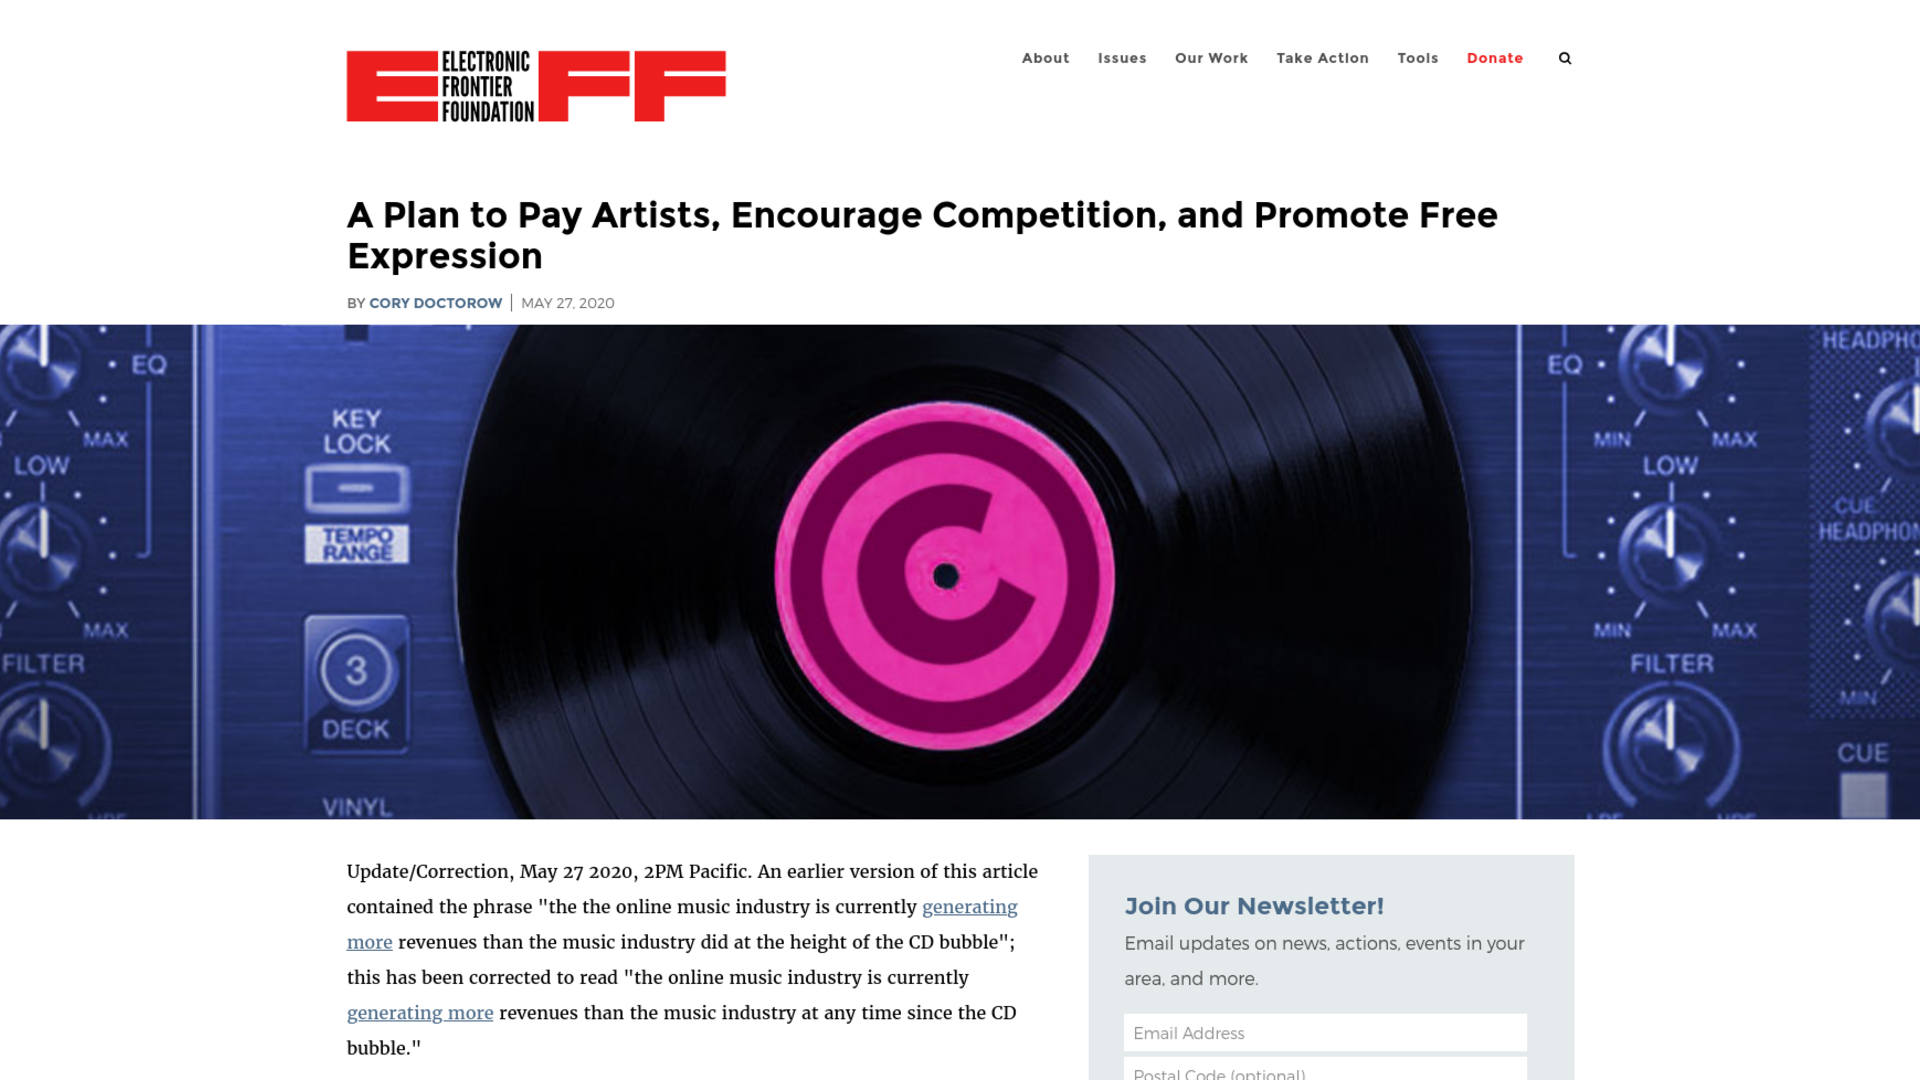 Fairness Rocks News A Plan to Pay Artists, Encourage Competition, and Promote Free Expression